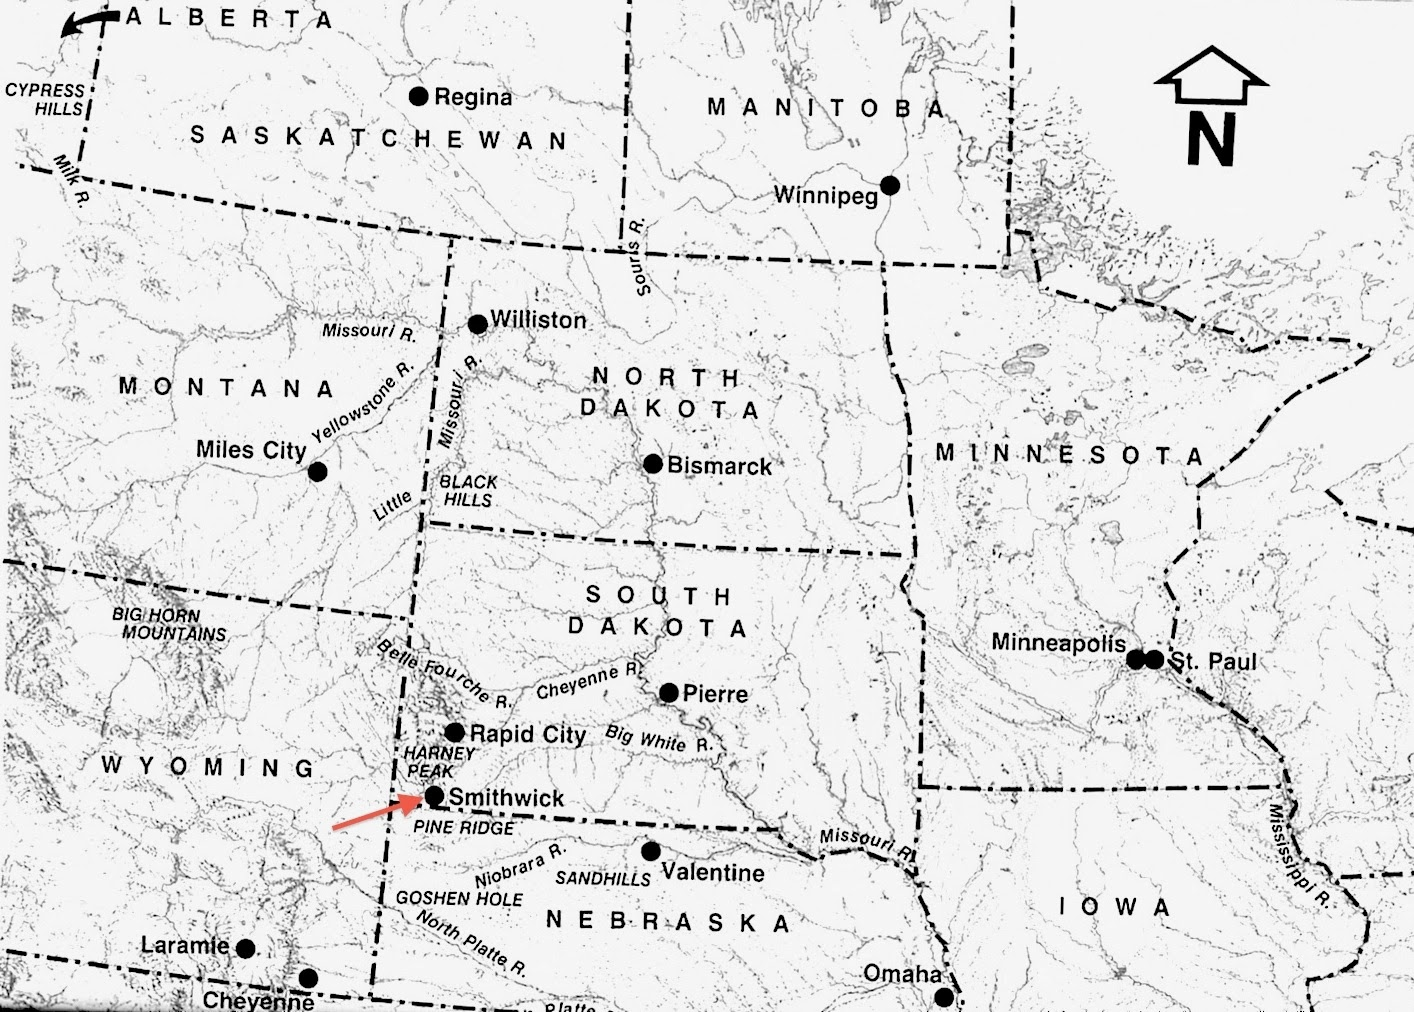 medium resolution of northern great plains barr s ranch was near smithwick from jewels of the plains click image to view